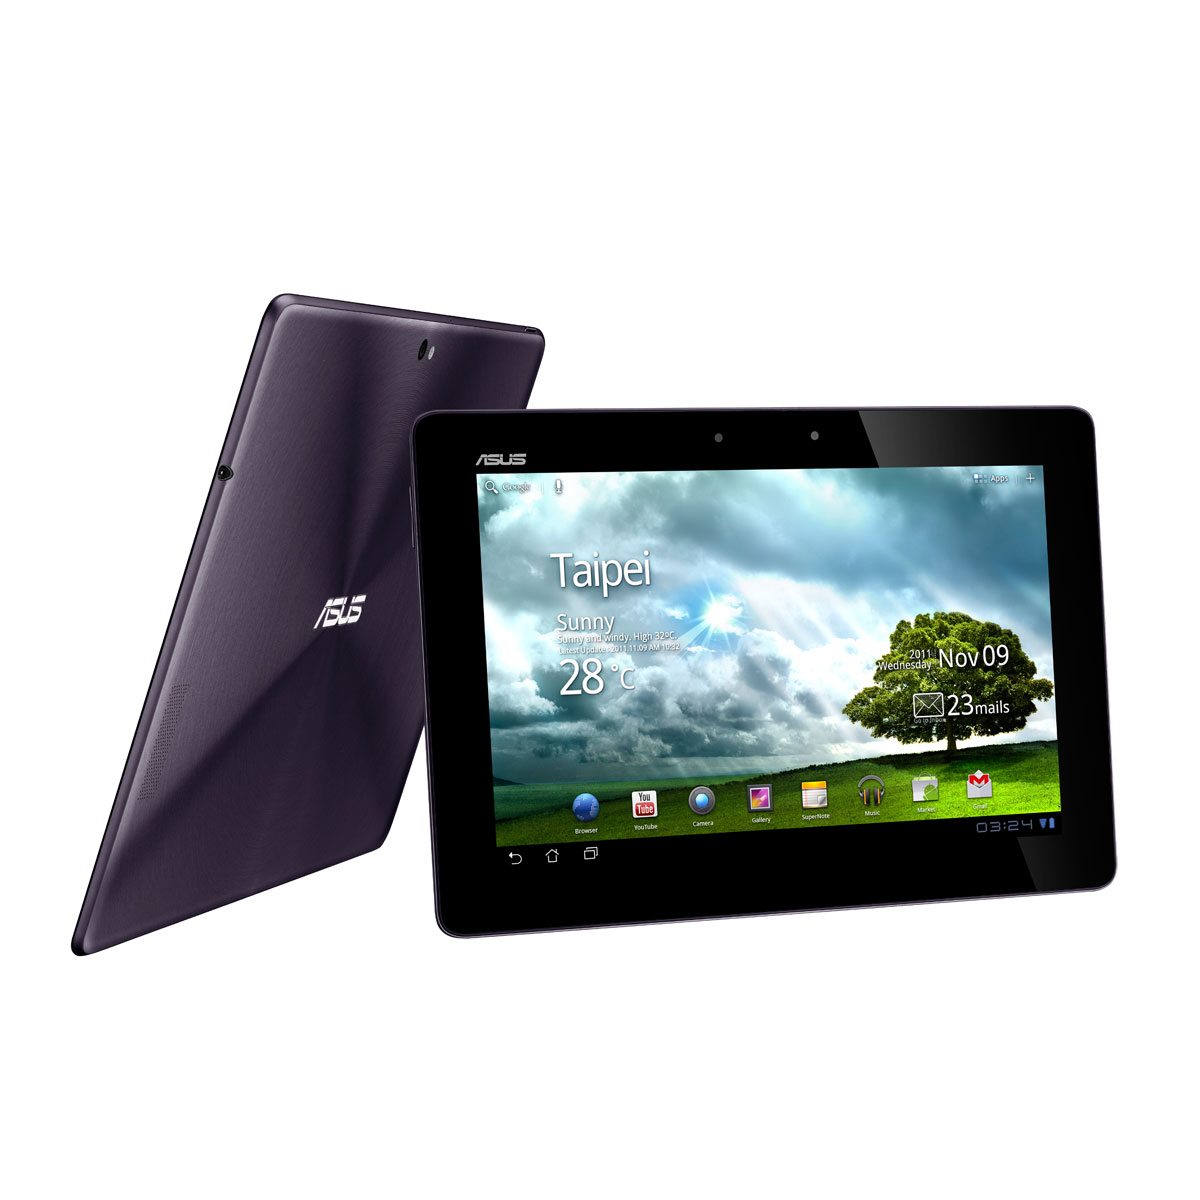 "Tablette tactile ASUS Eee Pad Transformer Prime TF201 Grise 32 Go Tablette Internet avec dock clavier - NVIDIA Tegra 3 SSD 32 Go 10.1"" LED Wi-Fi N/Bluetooth Webcam Android 3.2"